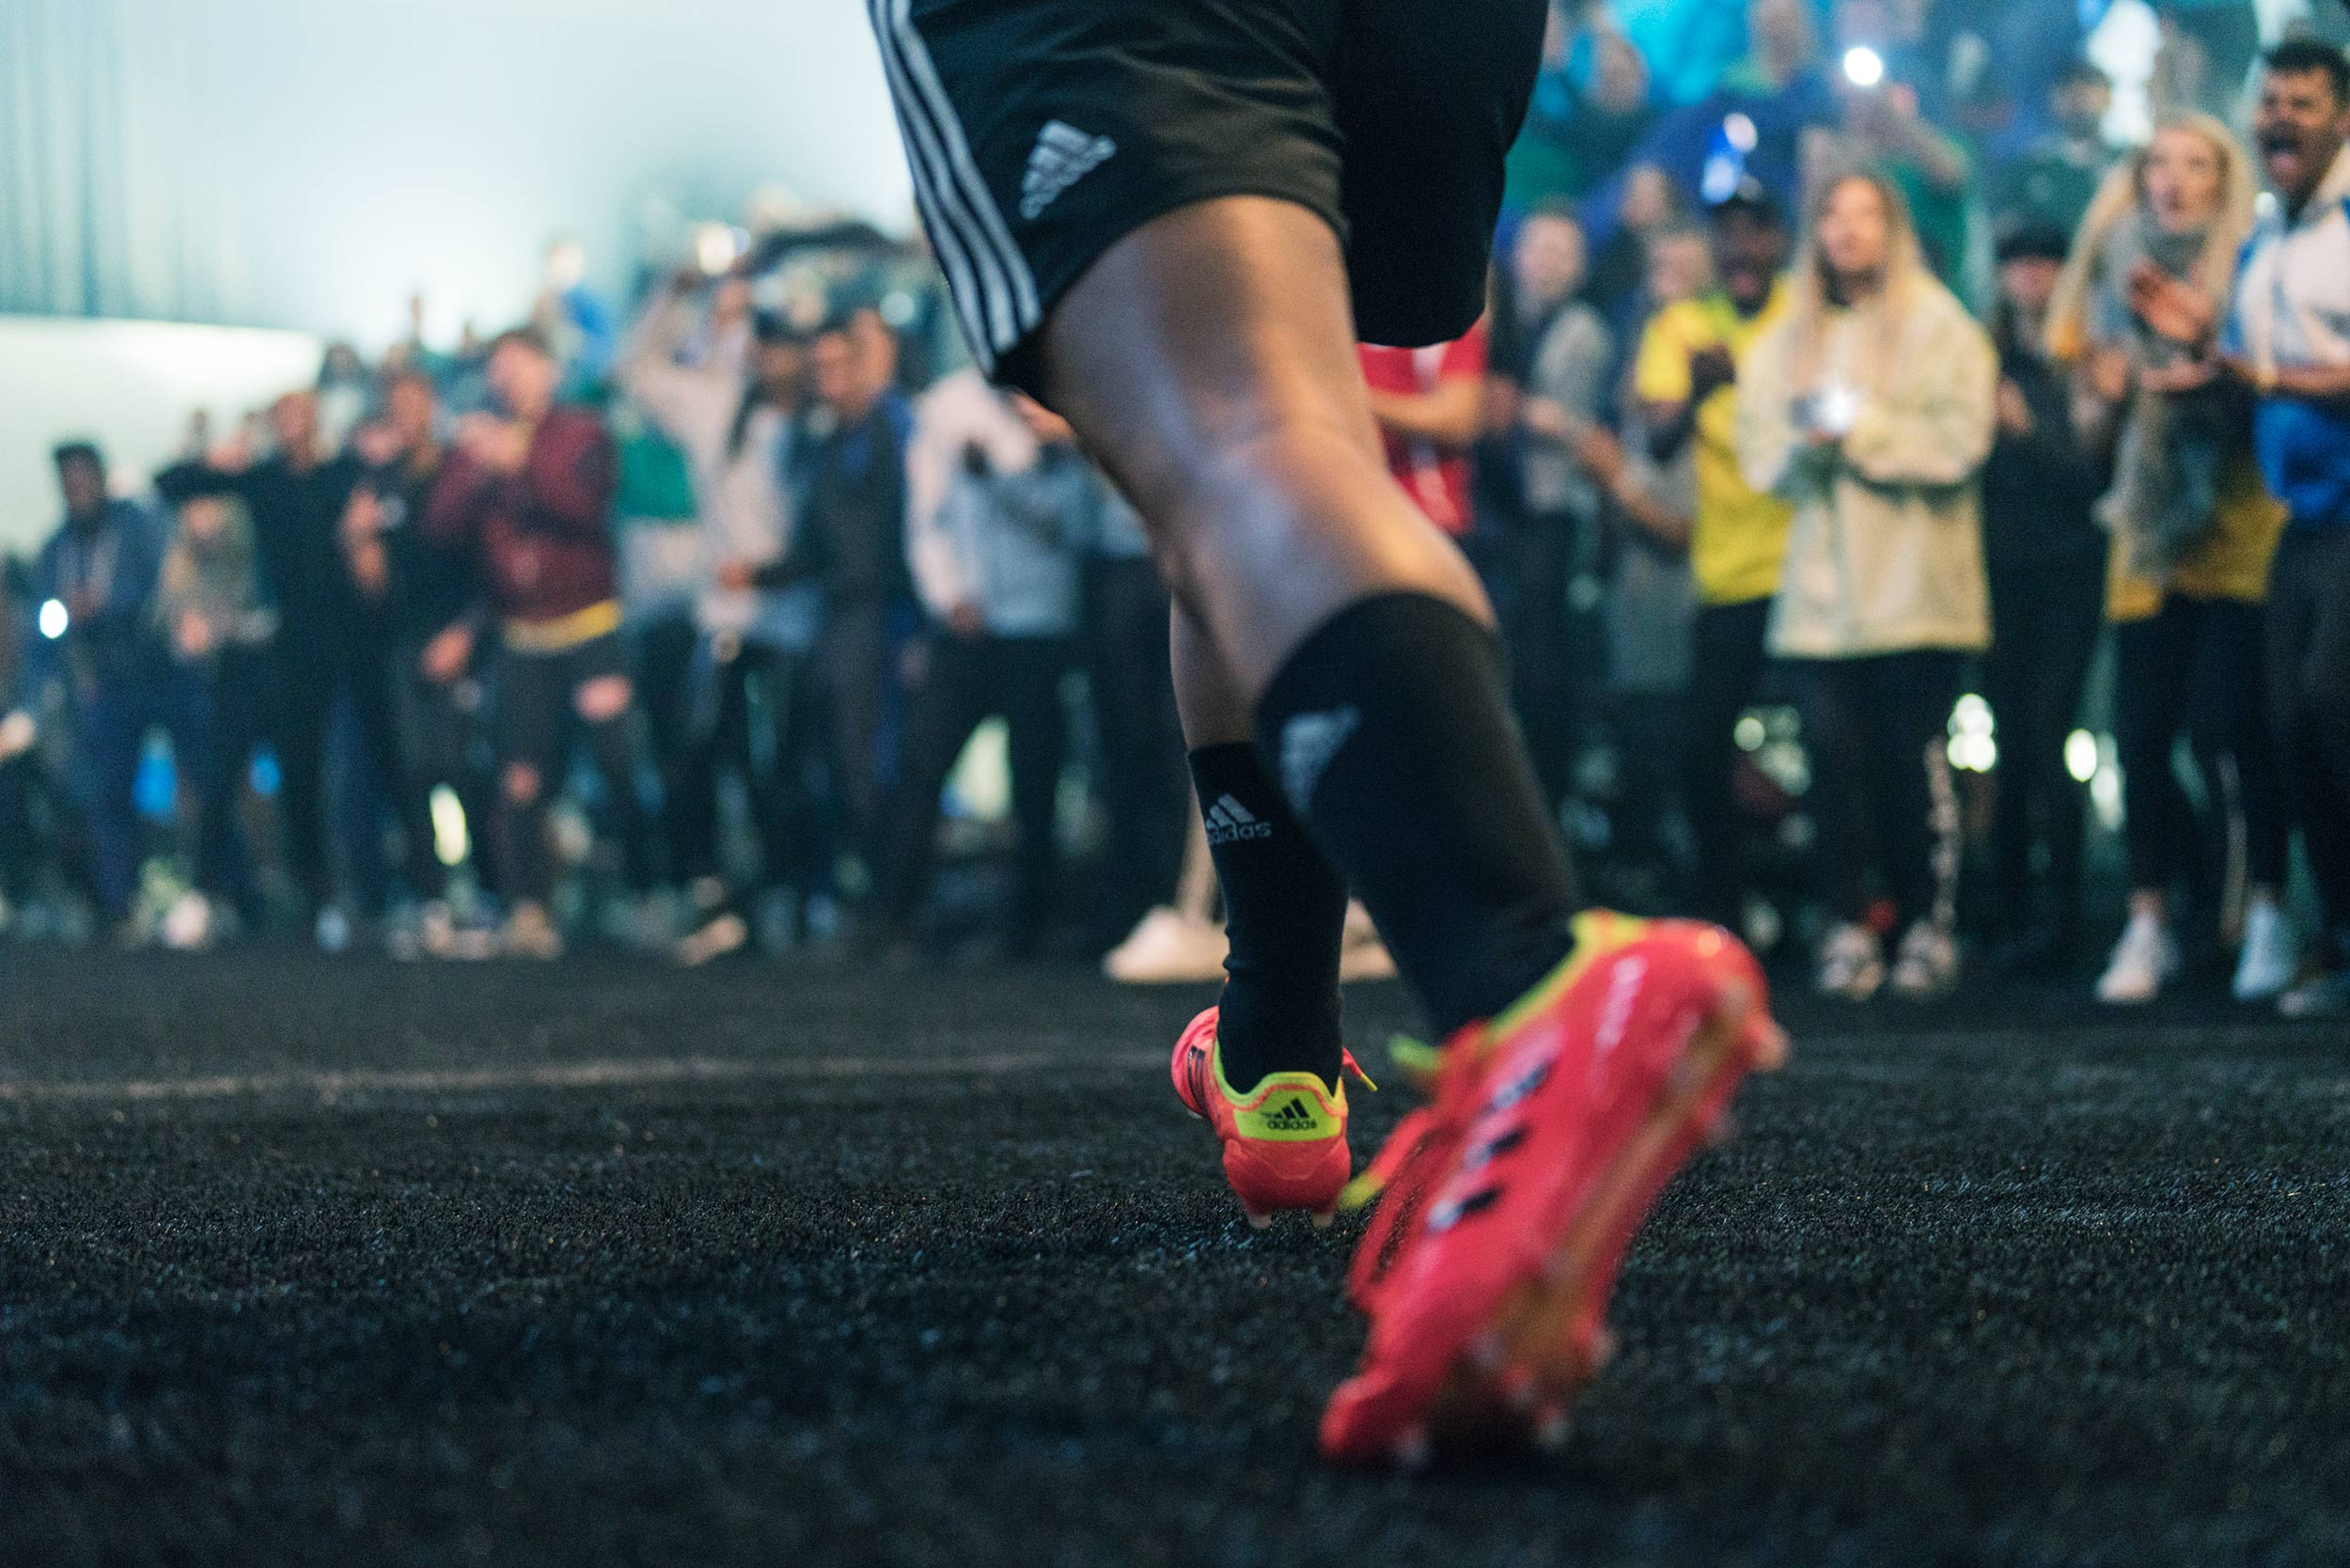 Adidas - Here to Create / Agency: Fiction